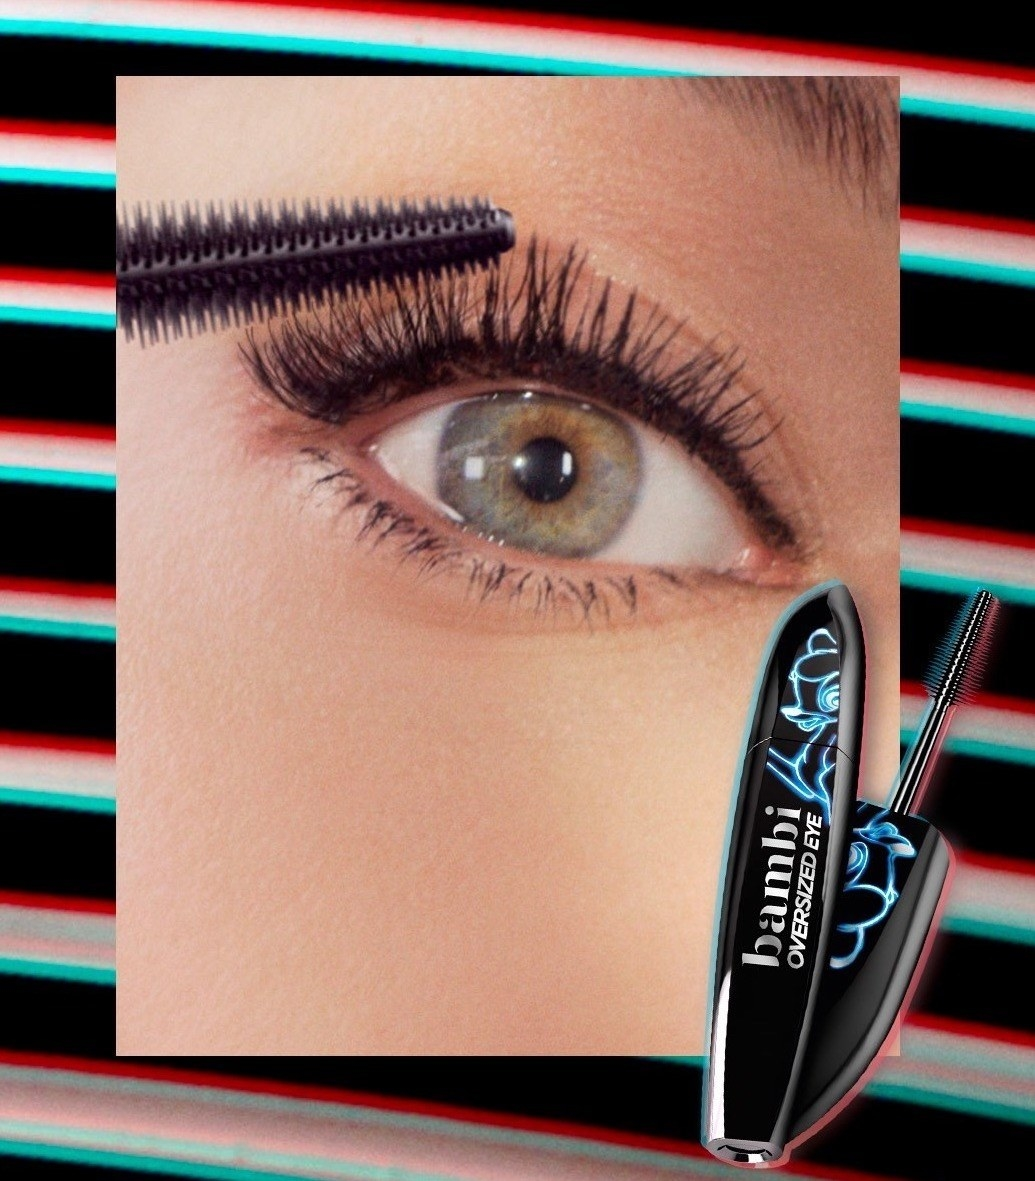 model's eye showing mascara on pictured next to tube